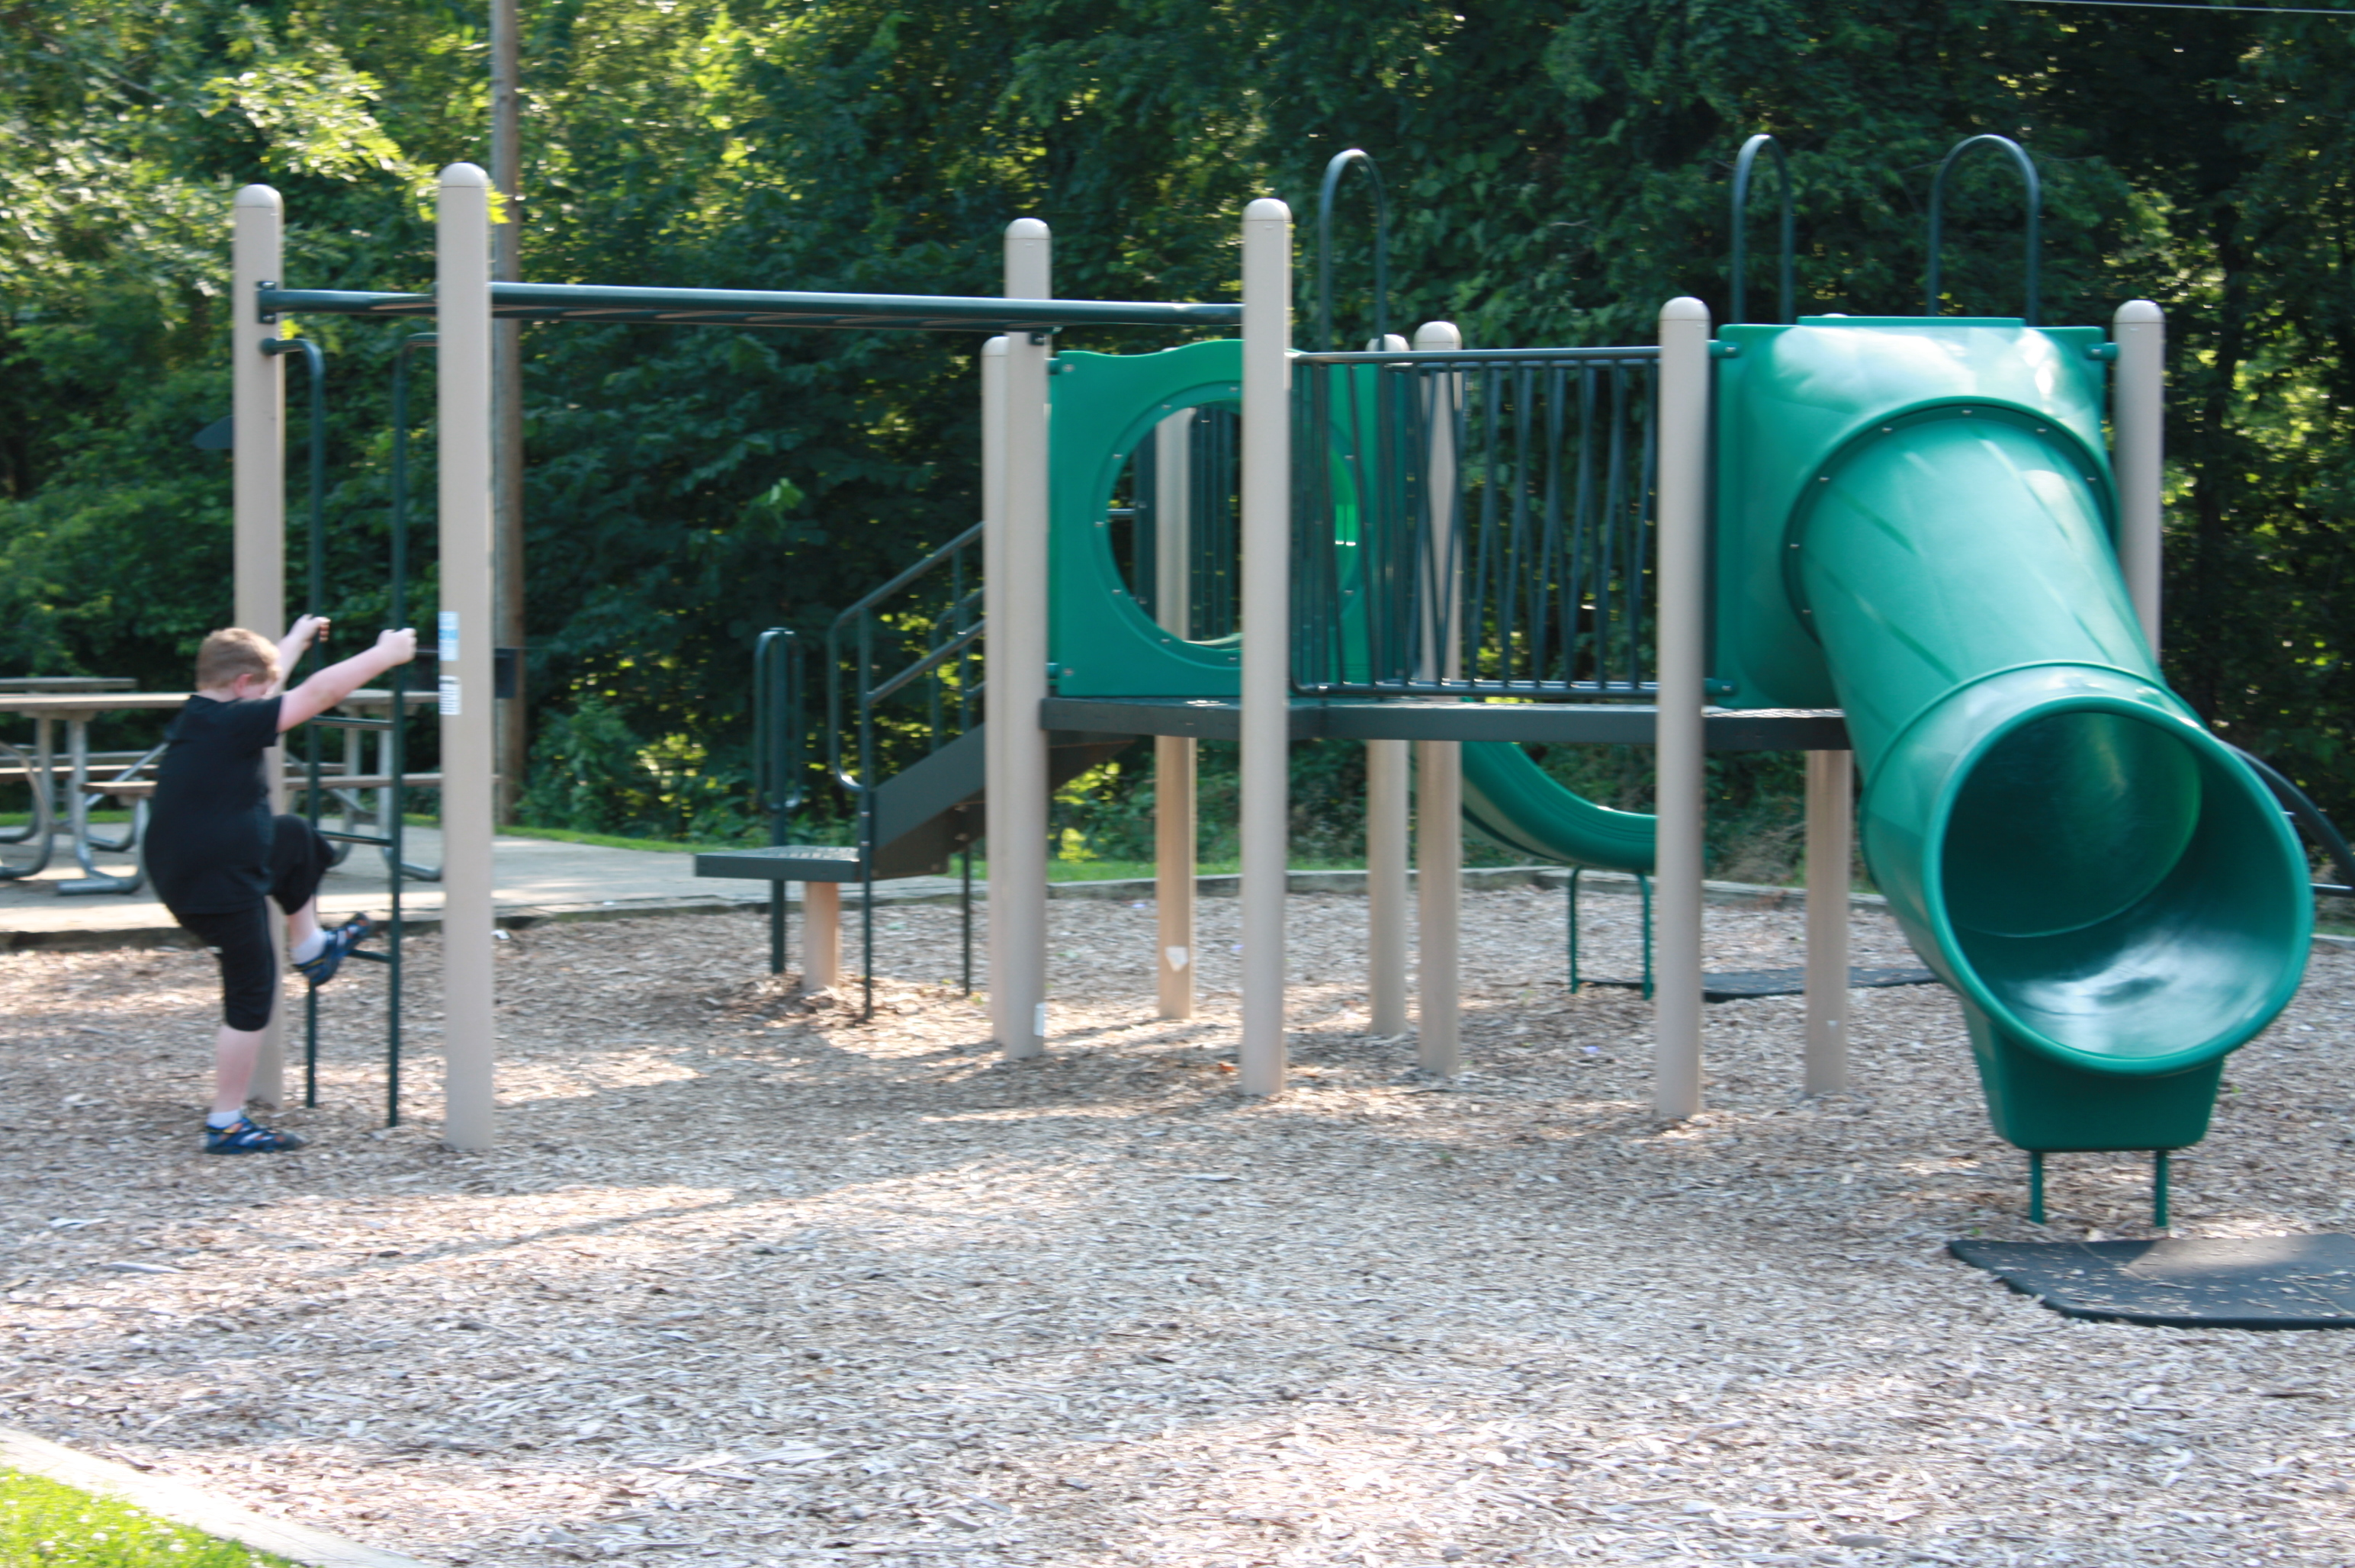 a kid climbing on the ladder of the playground structure, which includes monkey bars and a couple of slides